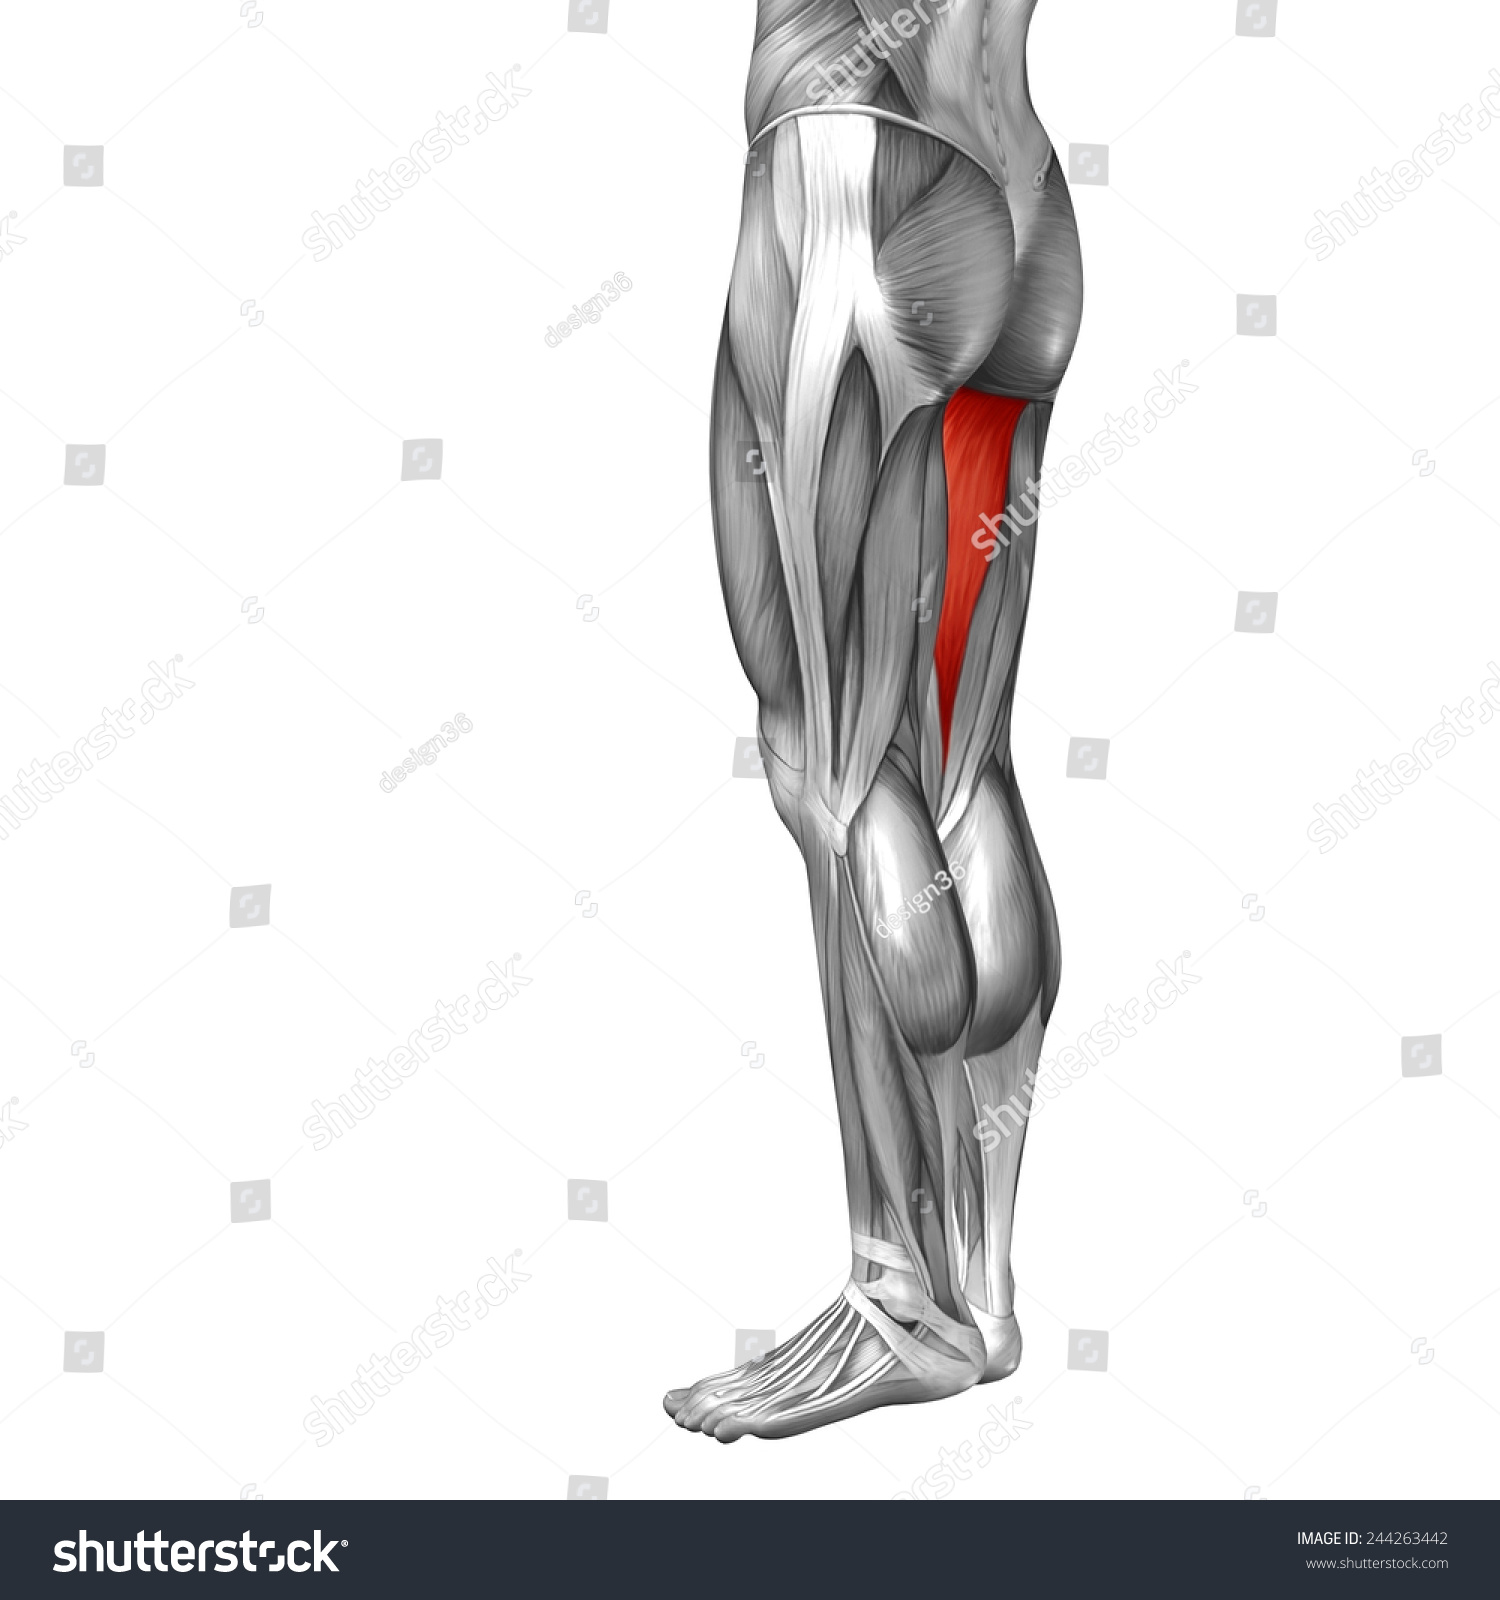 Concept Conceptual 3 D Back Upper Leg Stock Illustration 244263442 ...